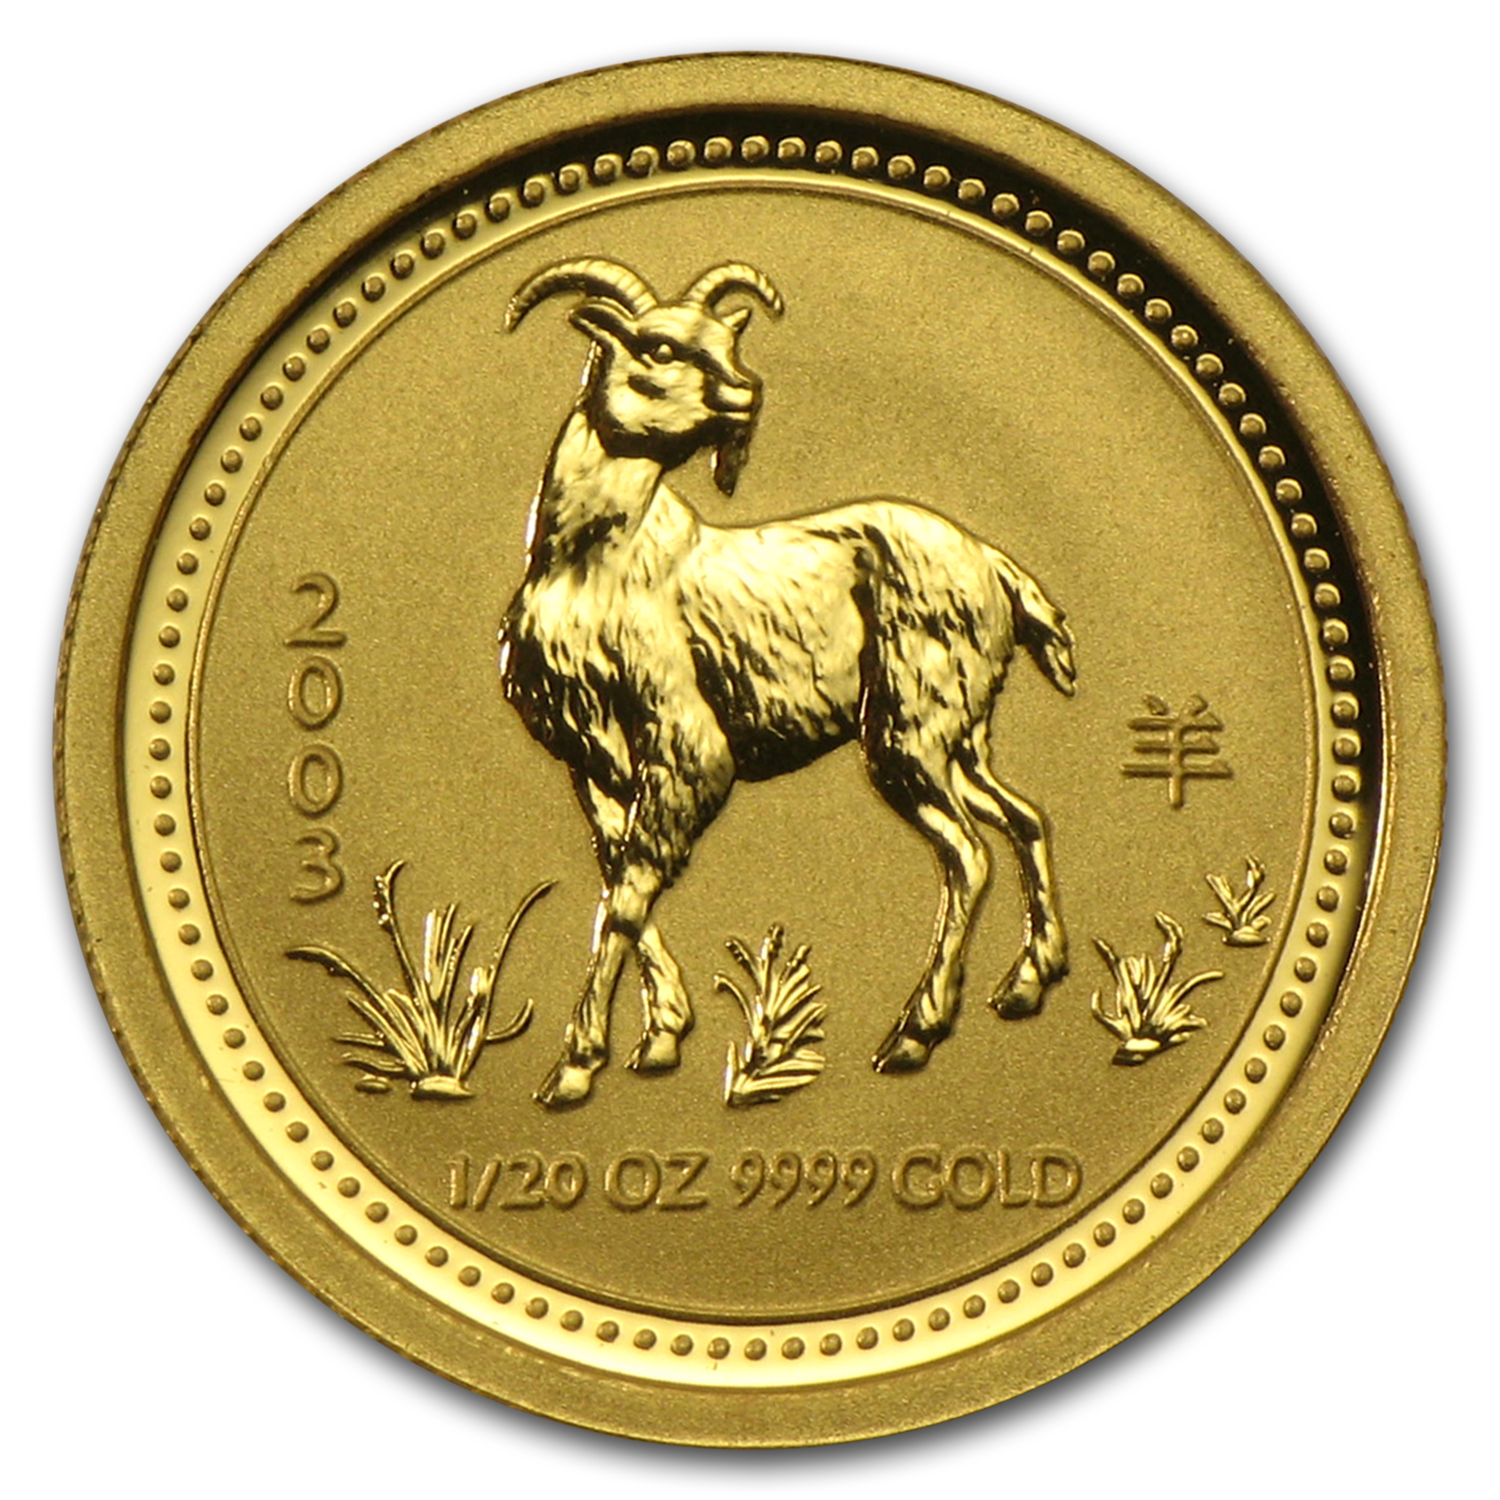 2003 1/20 oz Gold Year of the Goat Lunar Coin (Series I)